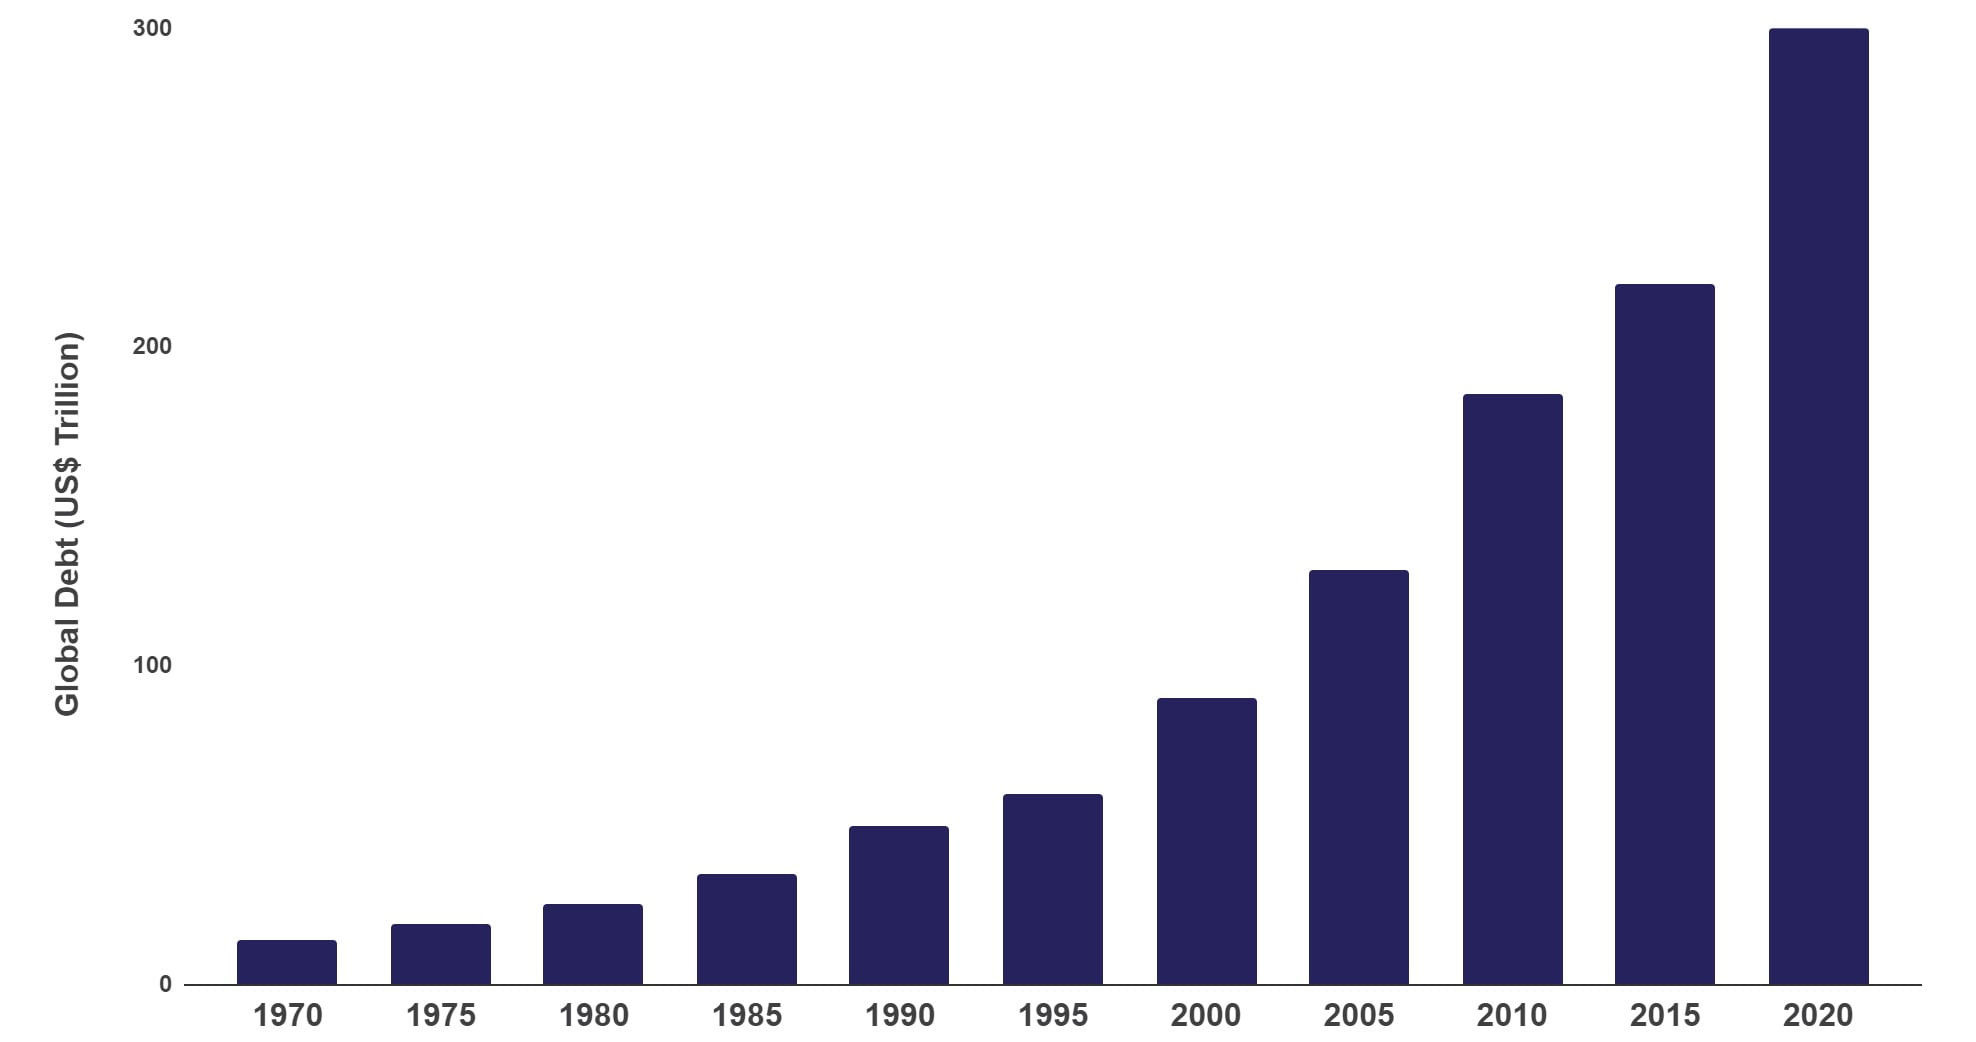 Global Debt (US$Trillion) from 1970 to 2020